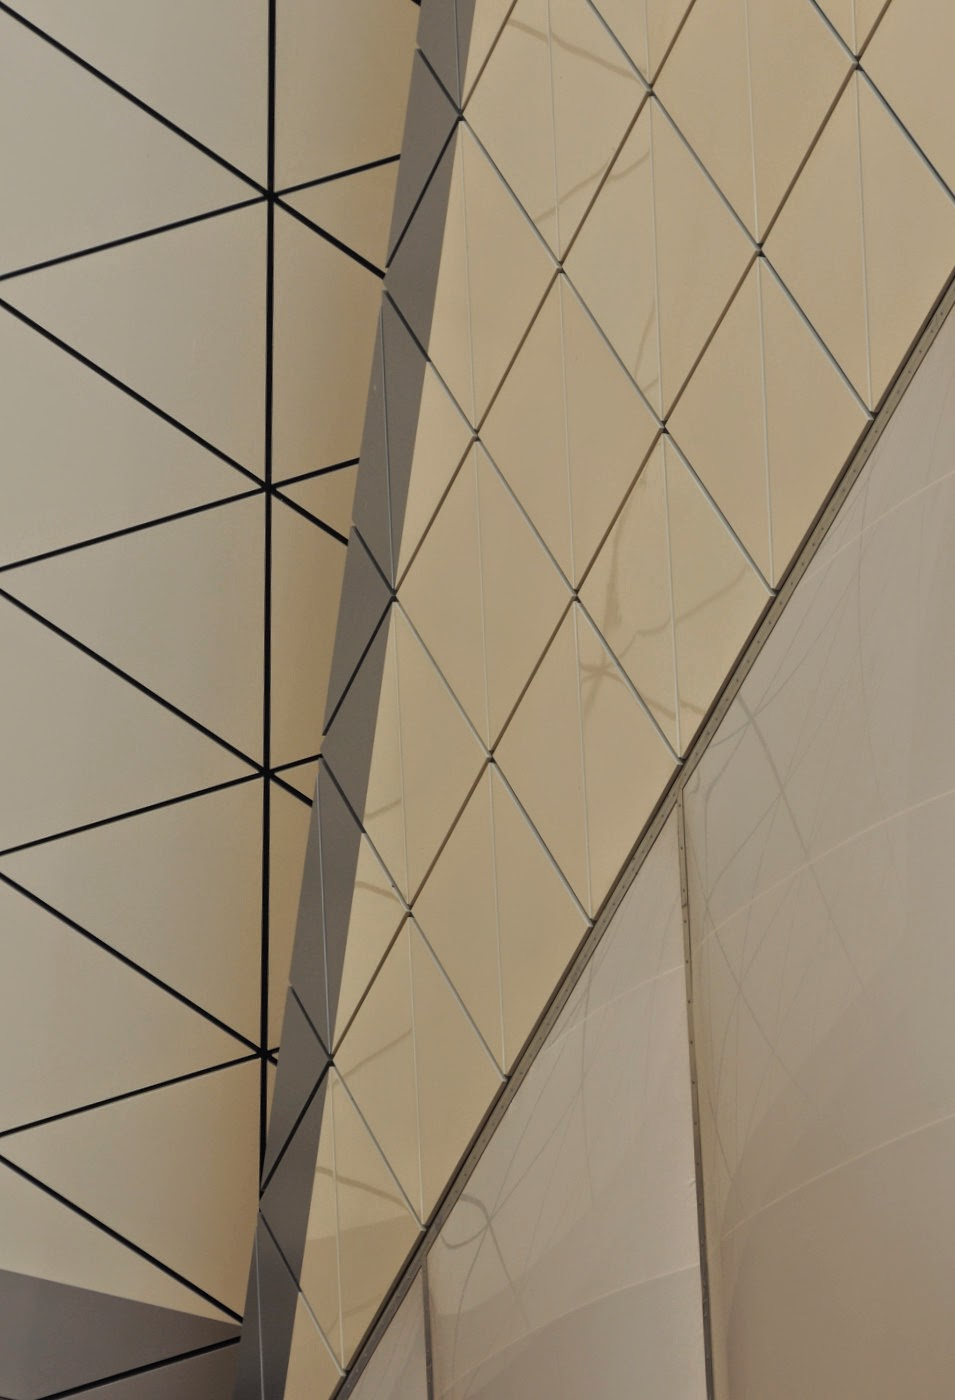 ARM, ARM Architecture, Cameron Chisholm Nicol, Perth arena, western Australia, tim Macauley, the light monkey collective, postmodern, postmodernist, façade, abstract, abstraction, detail, graphical, stunning, amazing, new, modern, architecture, architectural, moody, fine art, photographic art, Australian, Perth